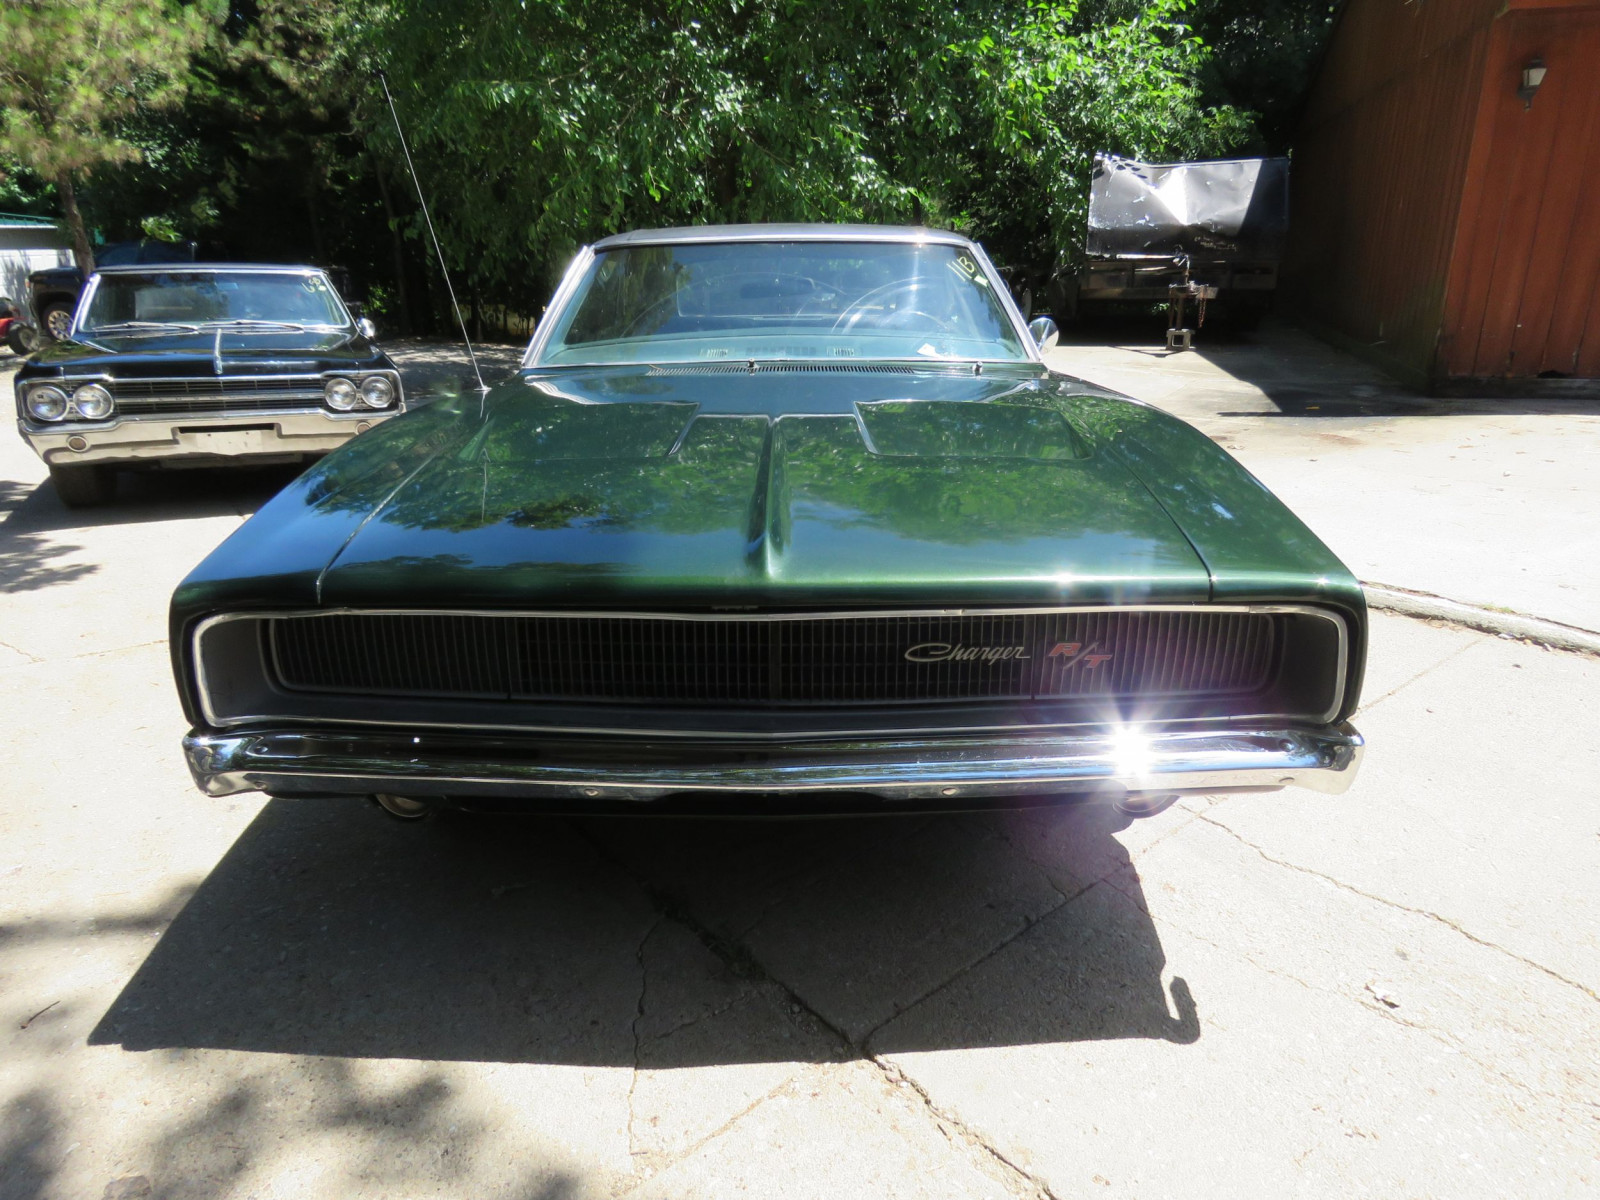 1968 Dodge Charger 2dr HT Coupe - Image 2